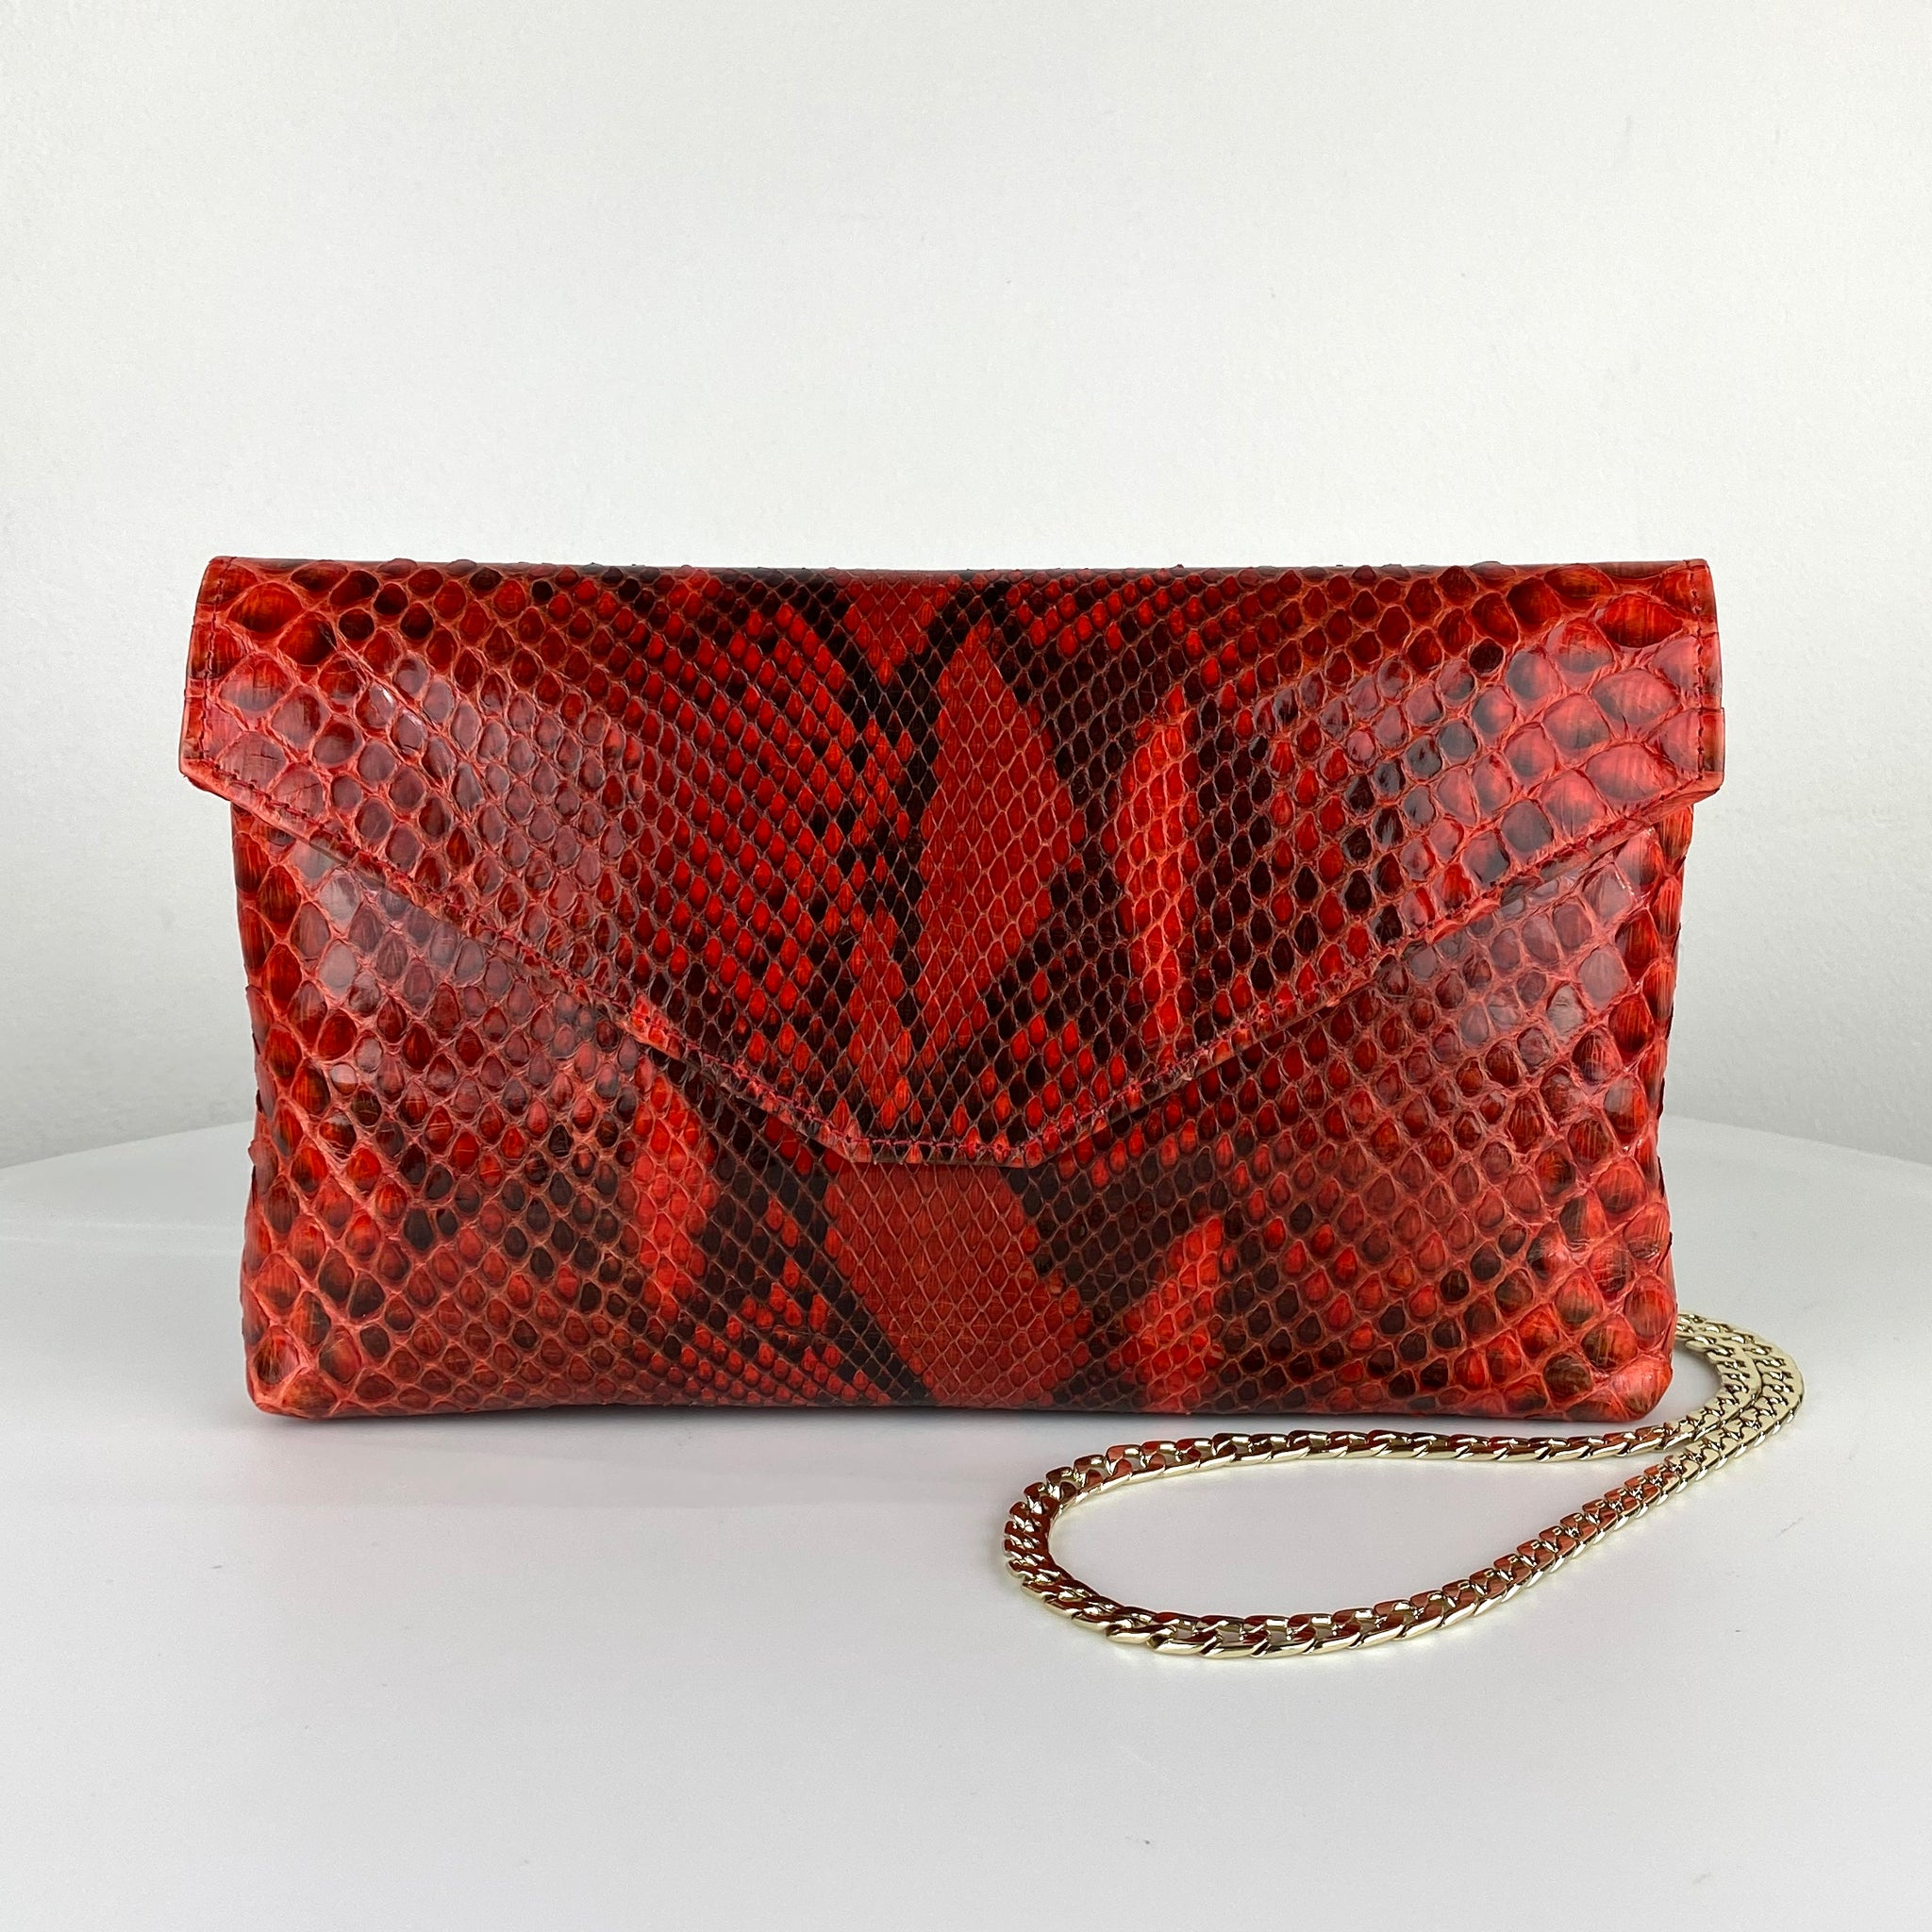 CLASSIC ENVELOPE BAG, RED EXOTIC